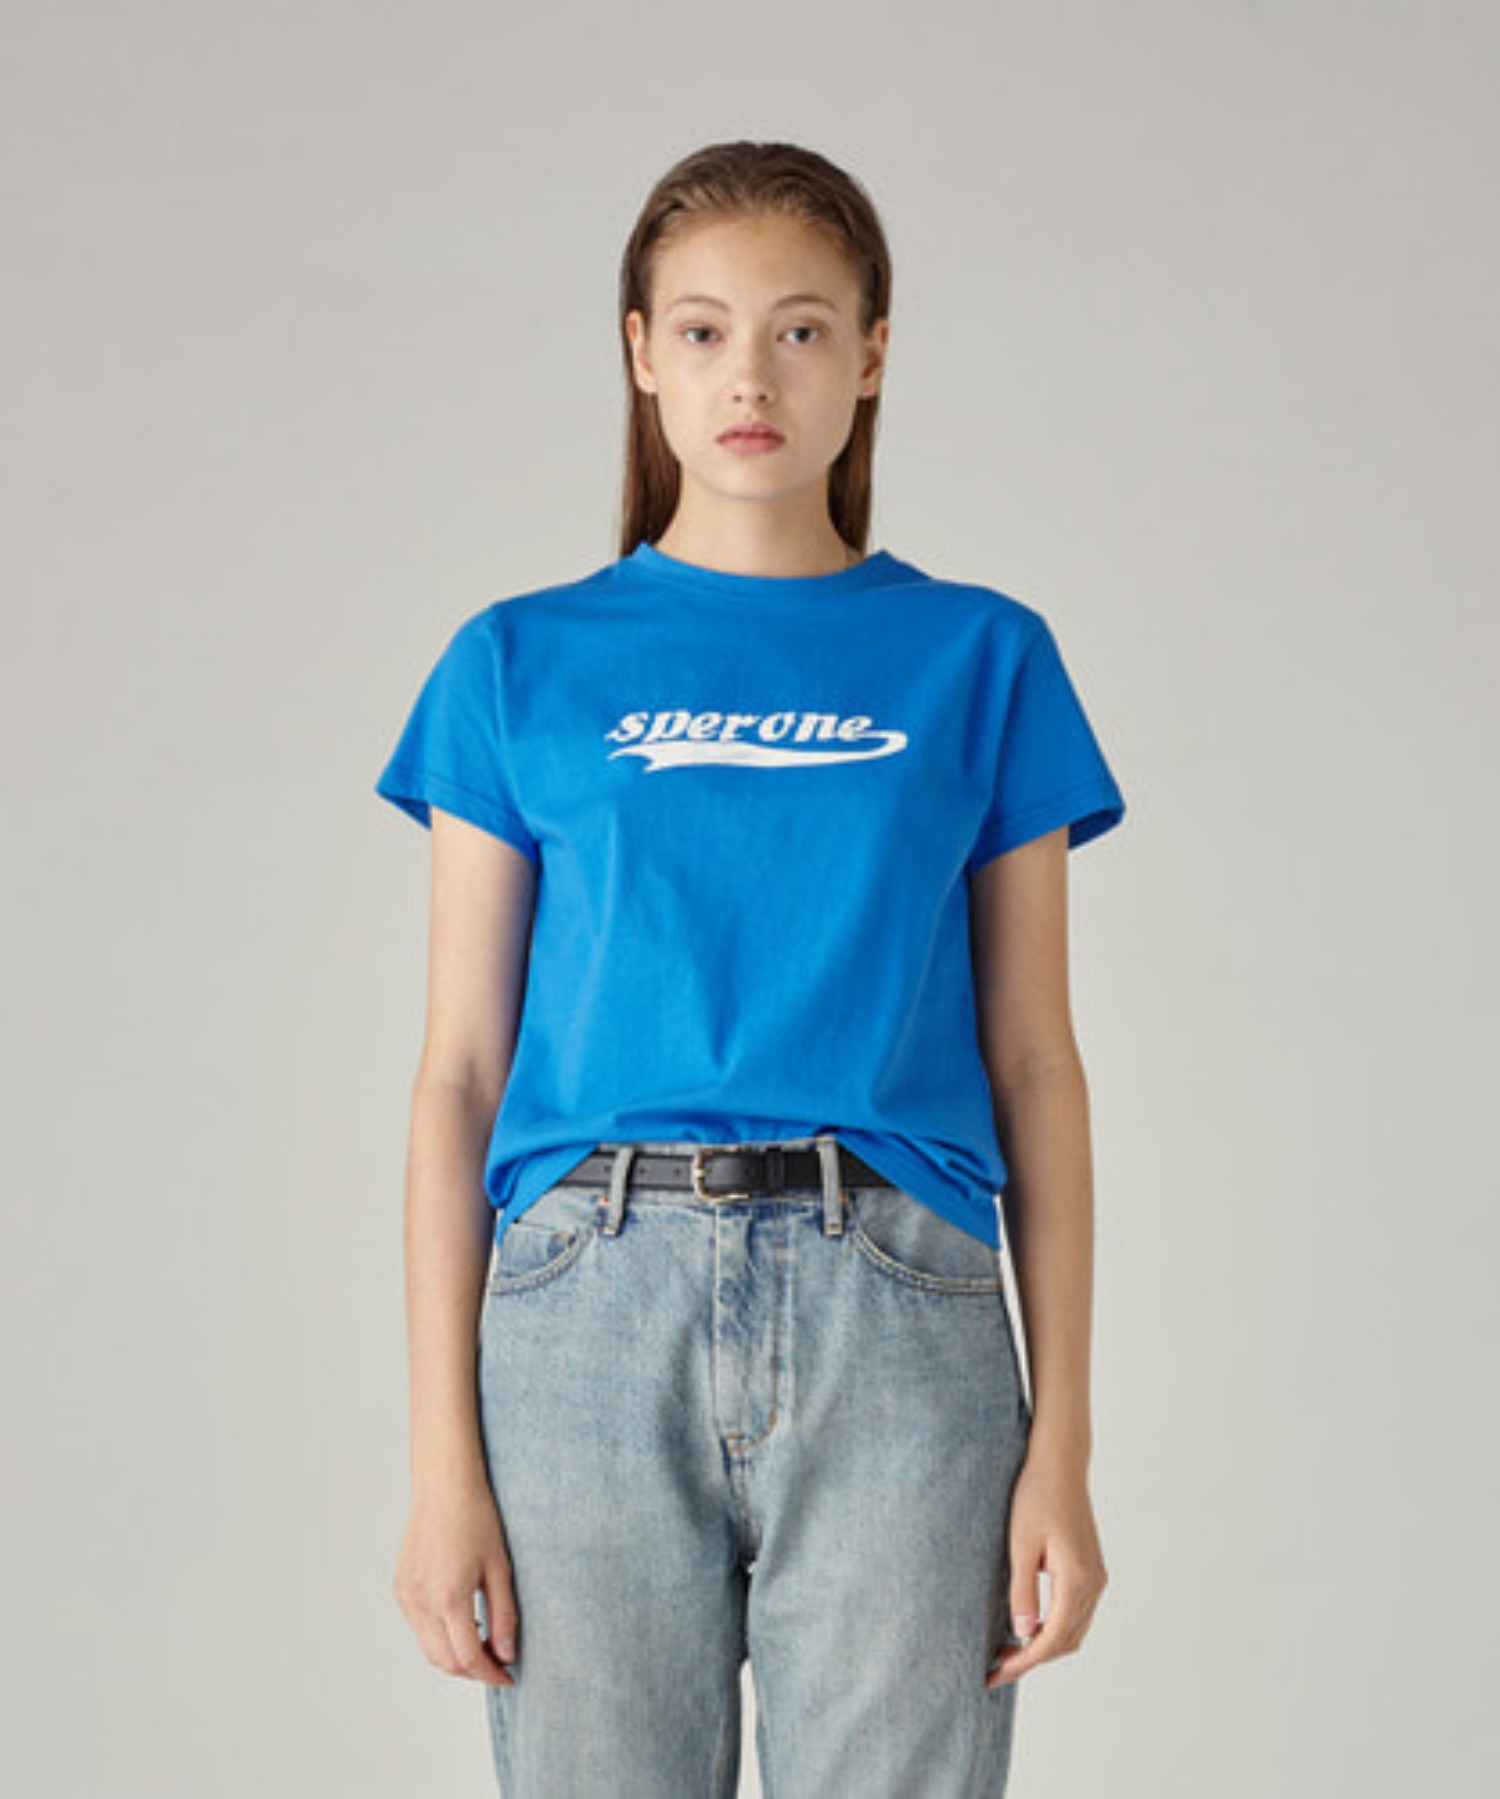 SPERONE LOGO T-SHIRT [BLUE/S]